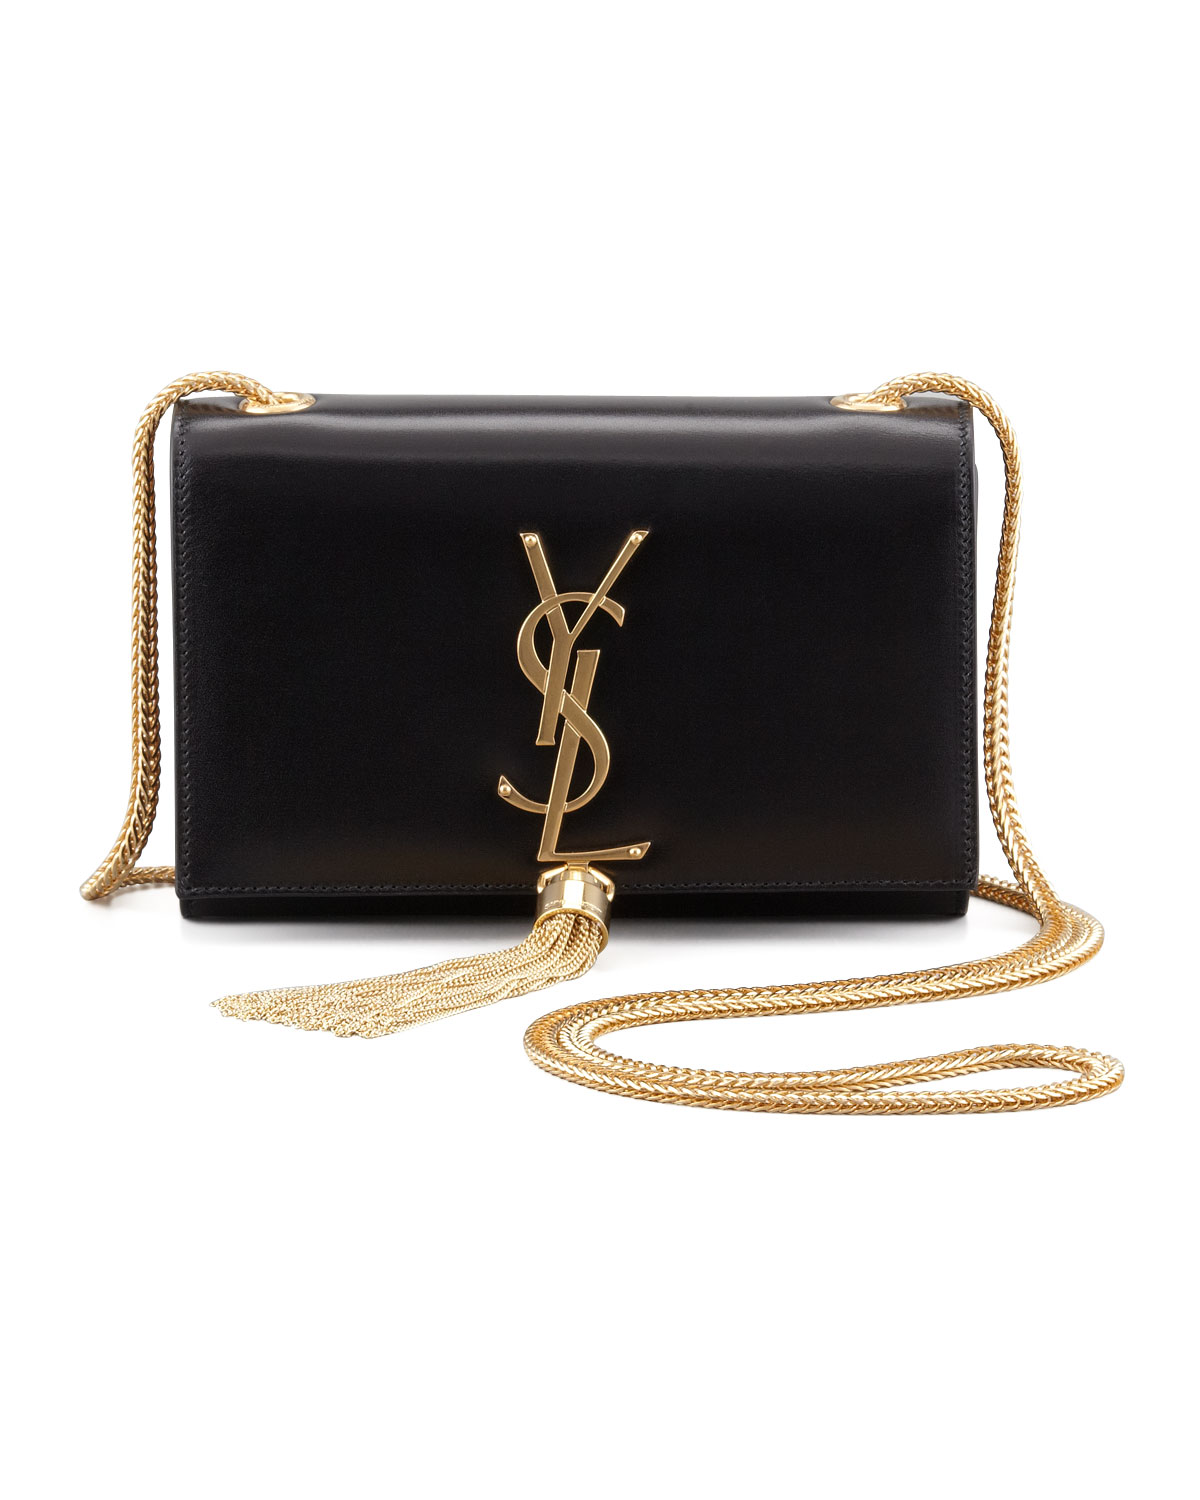 2ee8f4dcbc Saint Laurent Cassandre Small Tassel Crossbody Bag